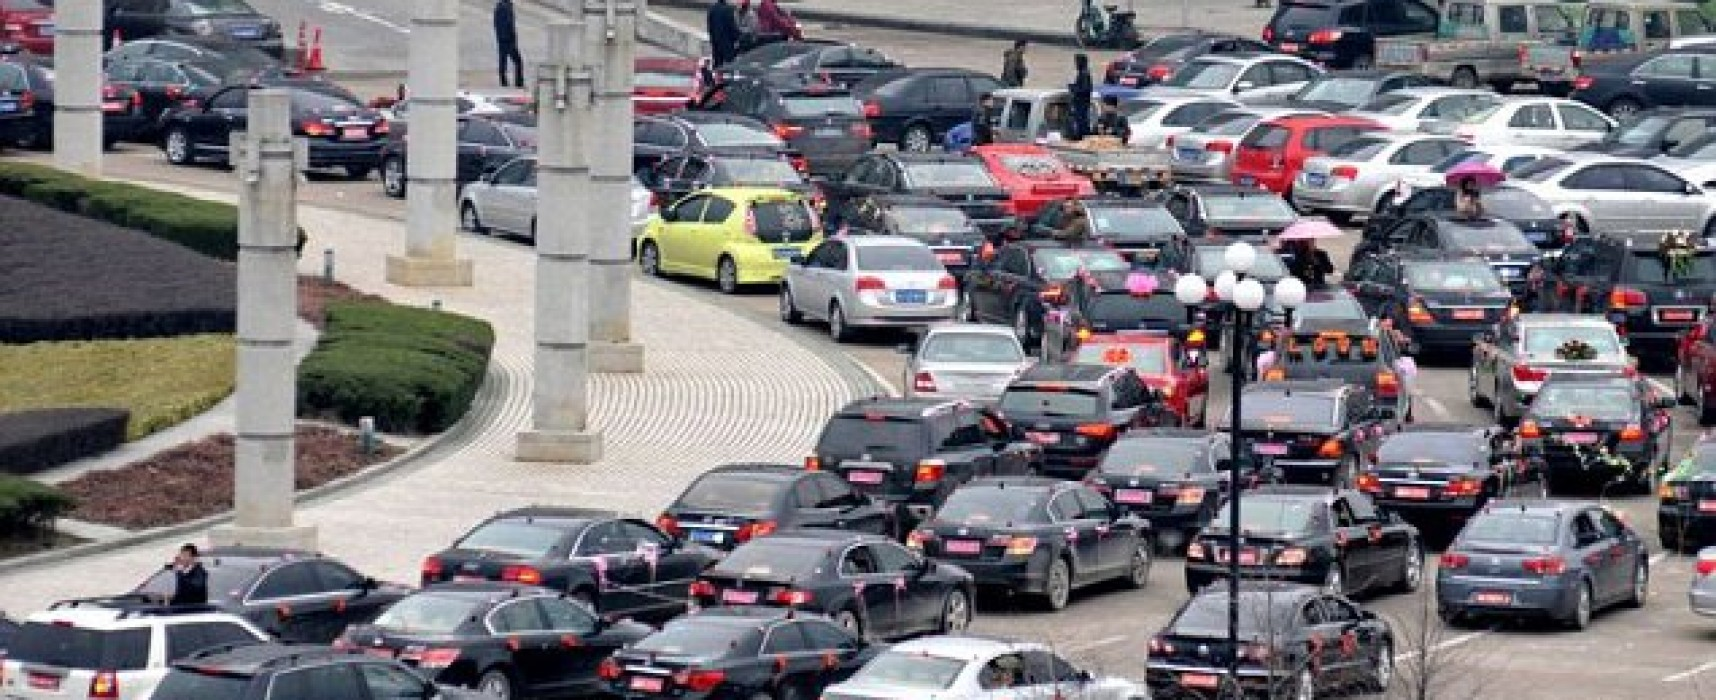 Wedding cars cause traffic chaos in China